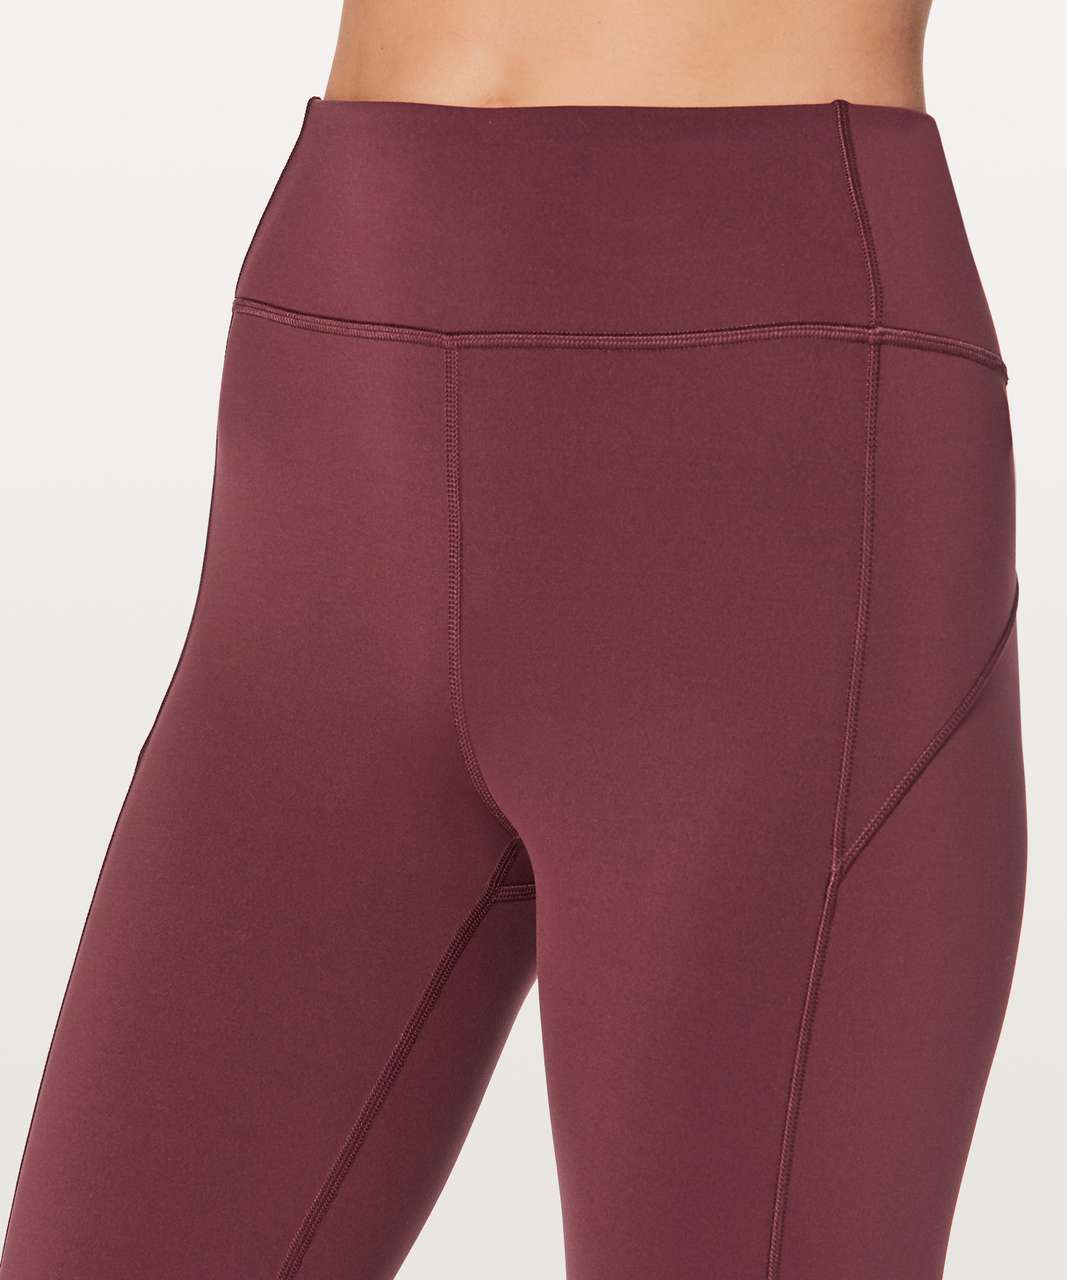 "Lululemon In Movement 7/8 Tight *Everlux 25"" - Redwood"